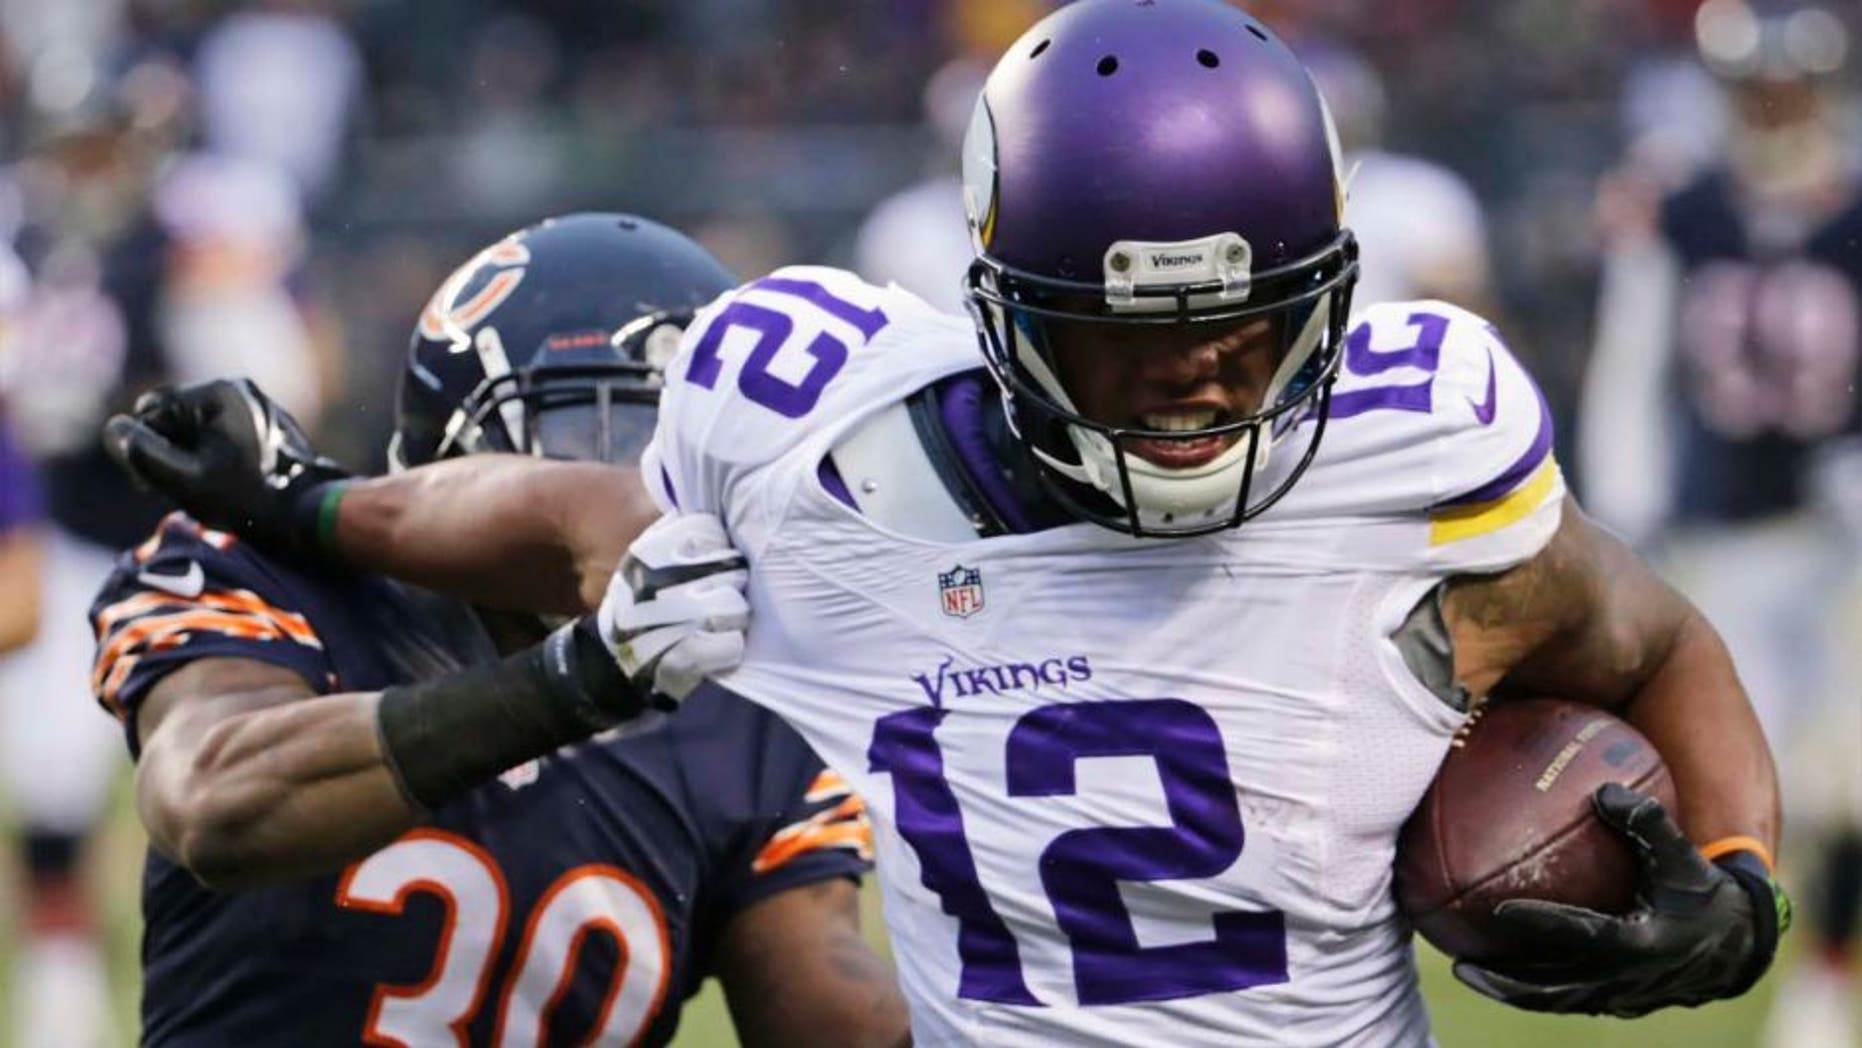 Minnesota Vikings receiver Charles Johnson (right) tries to avoid getting tackled by Chicago Bears cornerback Demontre Hurst during the second half.